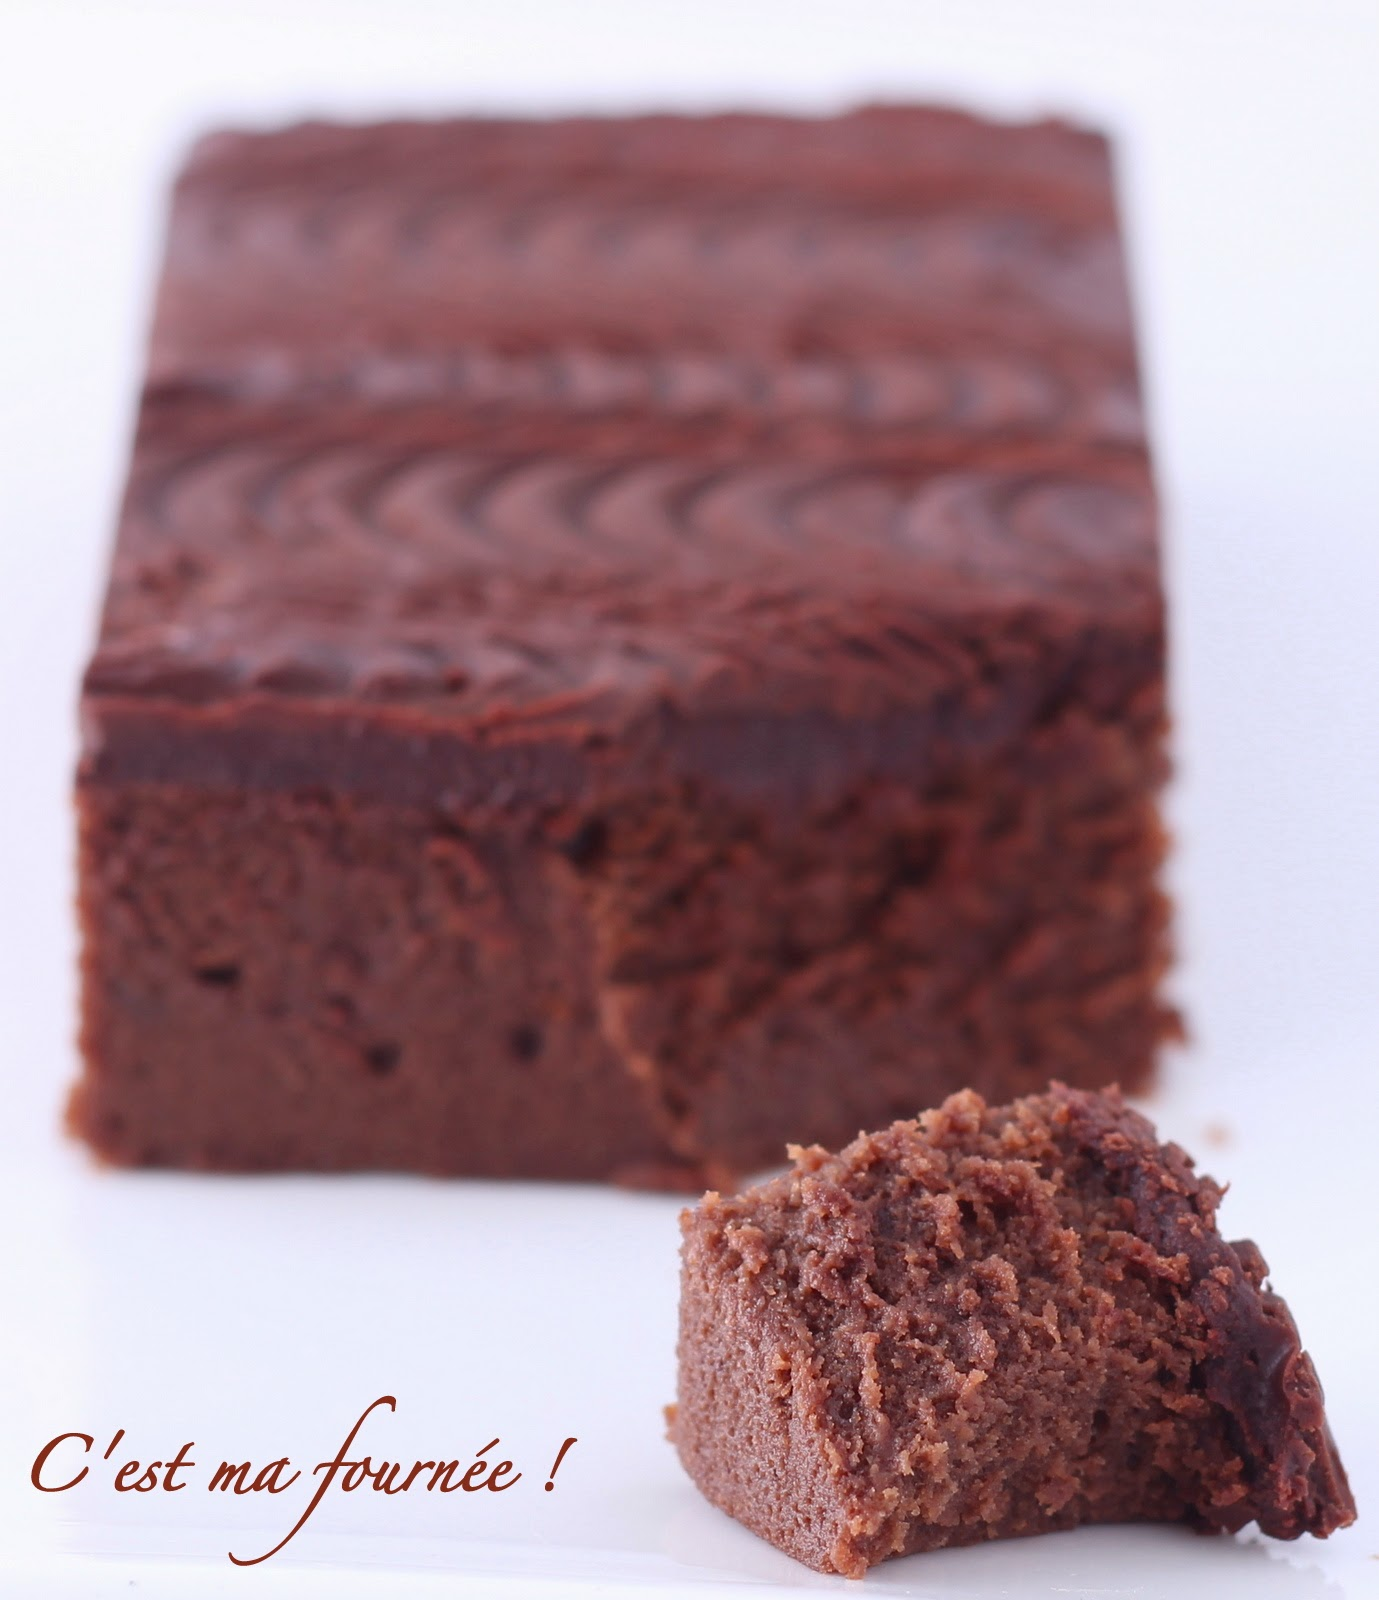 Temperature four gateau au chocolat